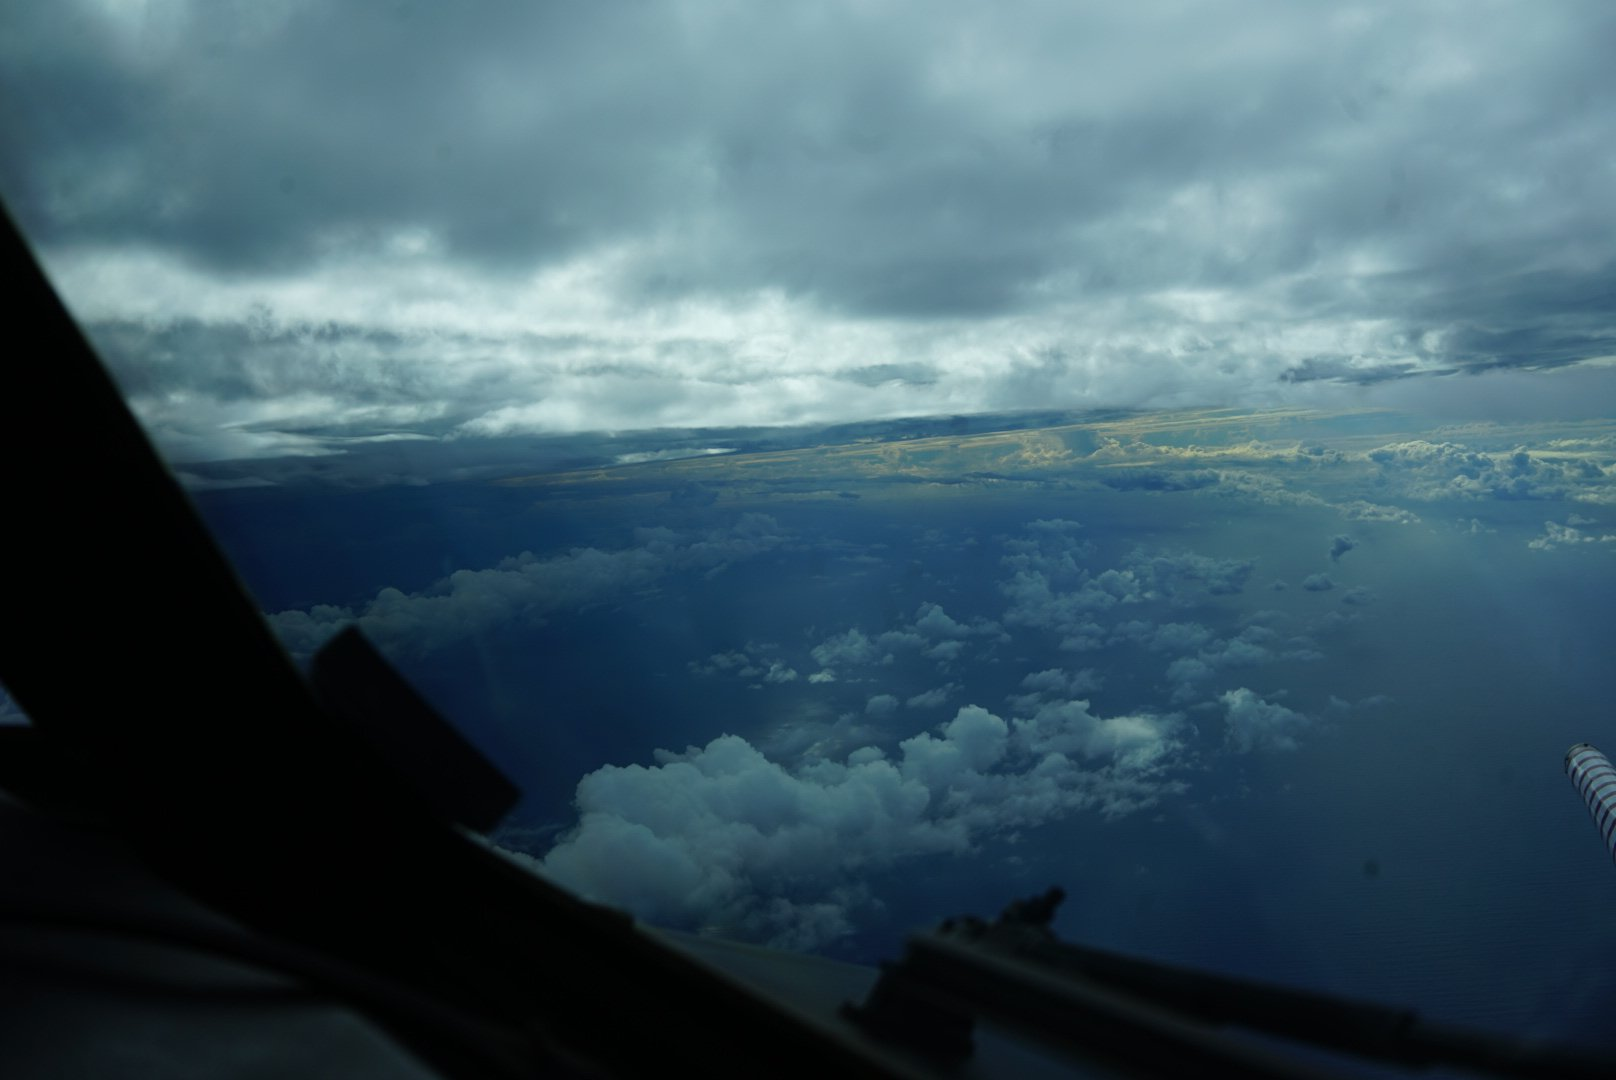 photo: LCDR Robert Mitchell, NOAA; desc: NOAA42's Hurricane Dorian flight this morning, 30 August 2019